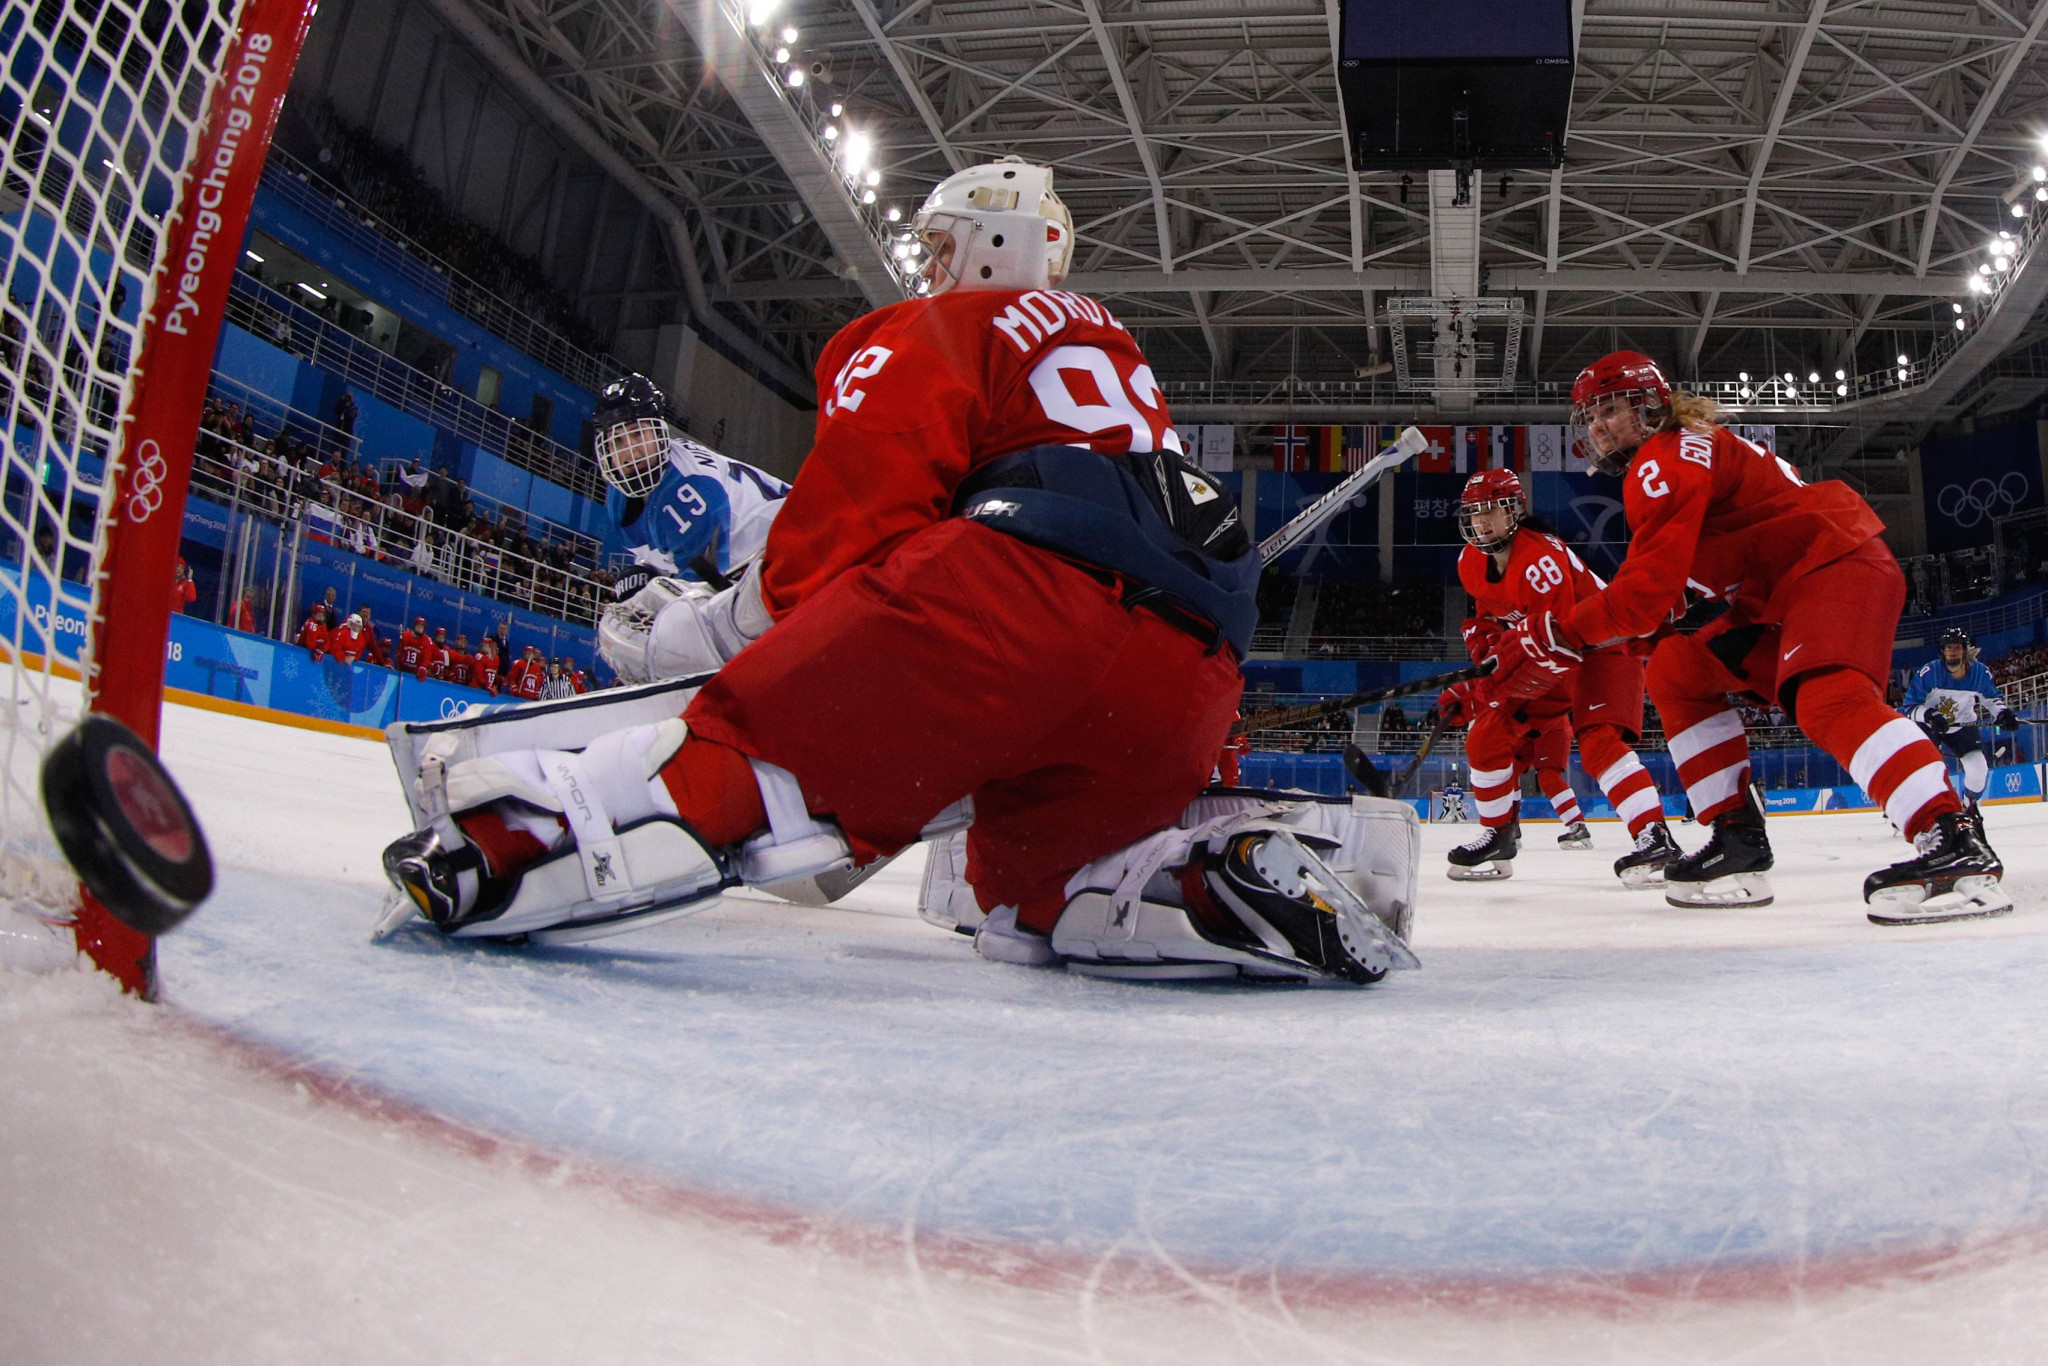 Pyeongchang 2018: Day six of competition